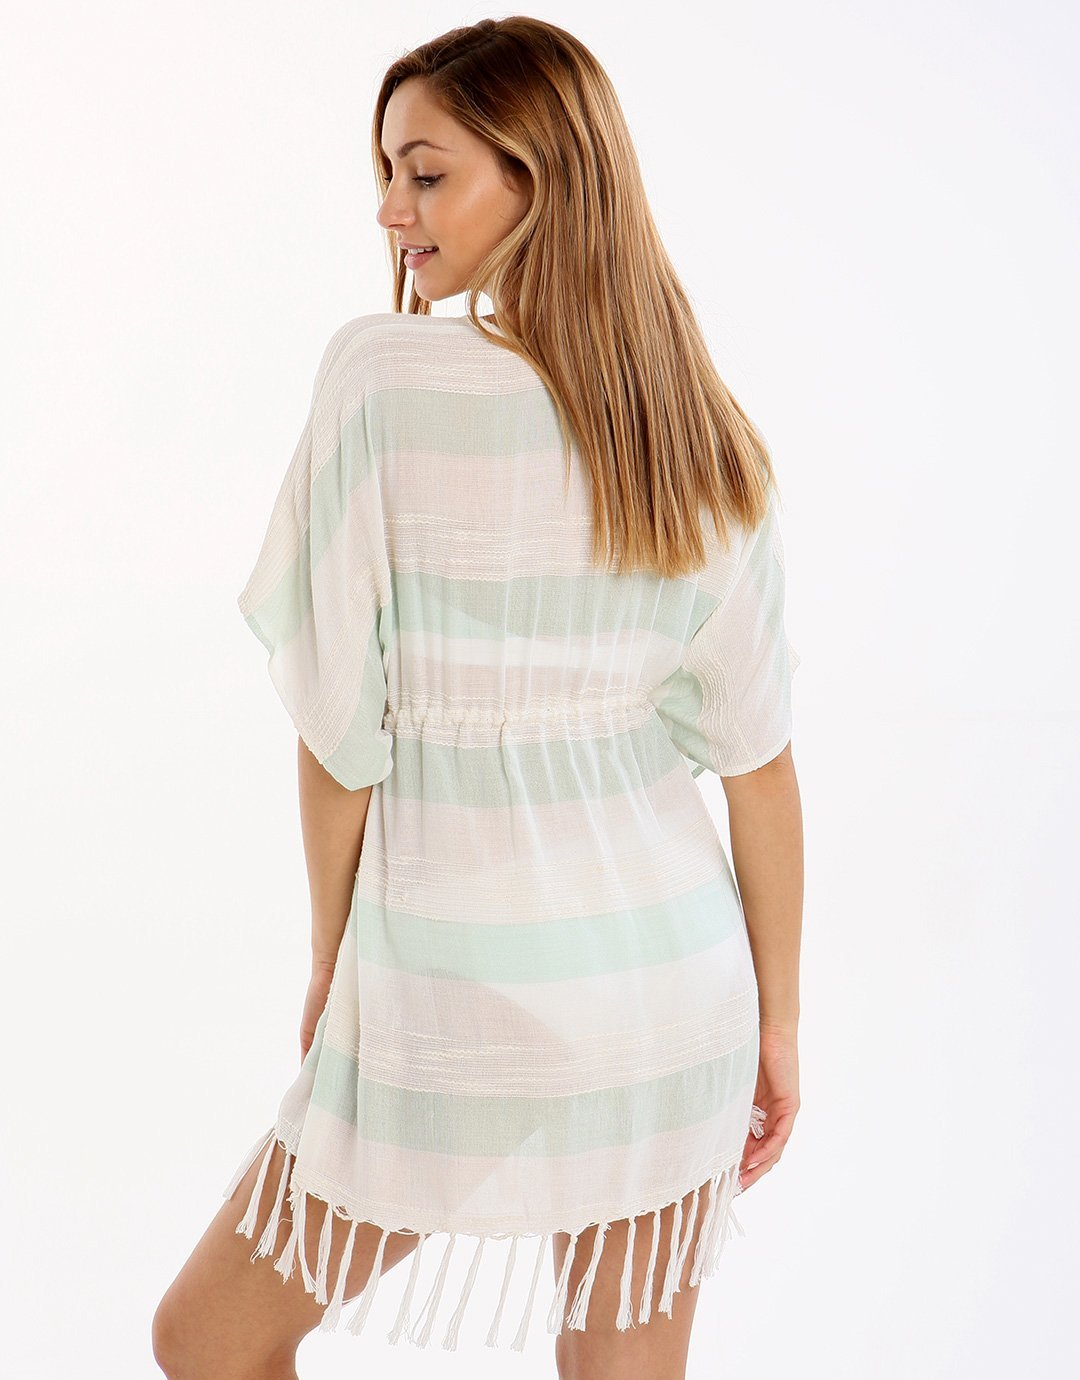 Watercult Kimono - Off White and Aqua